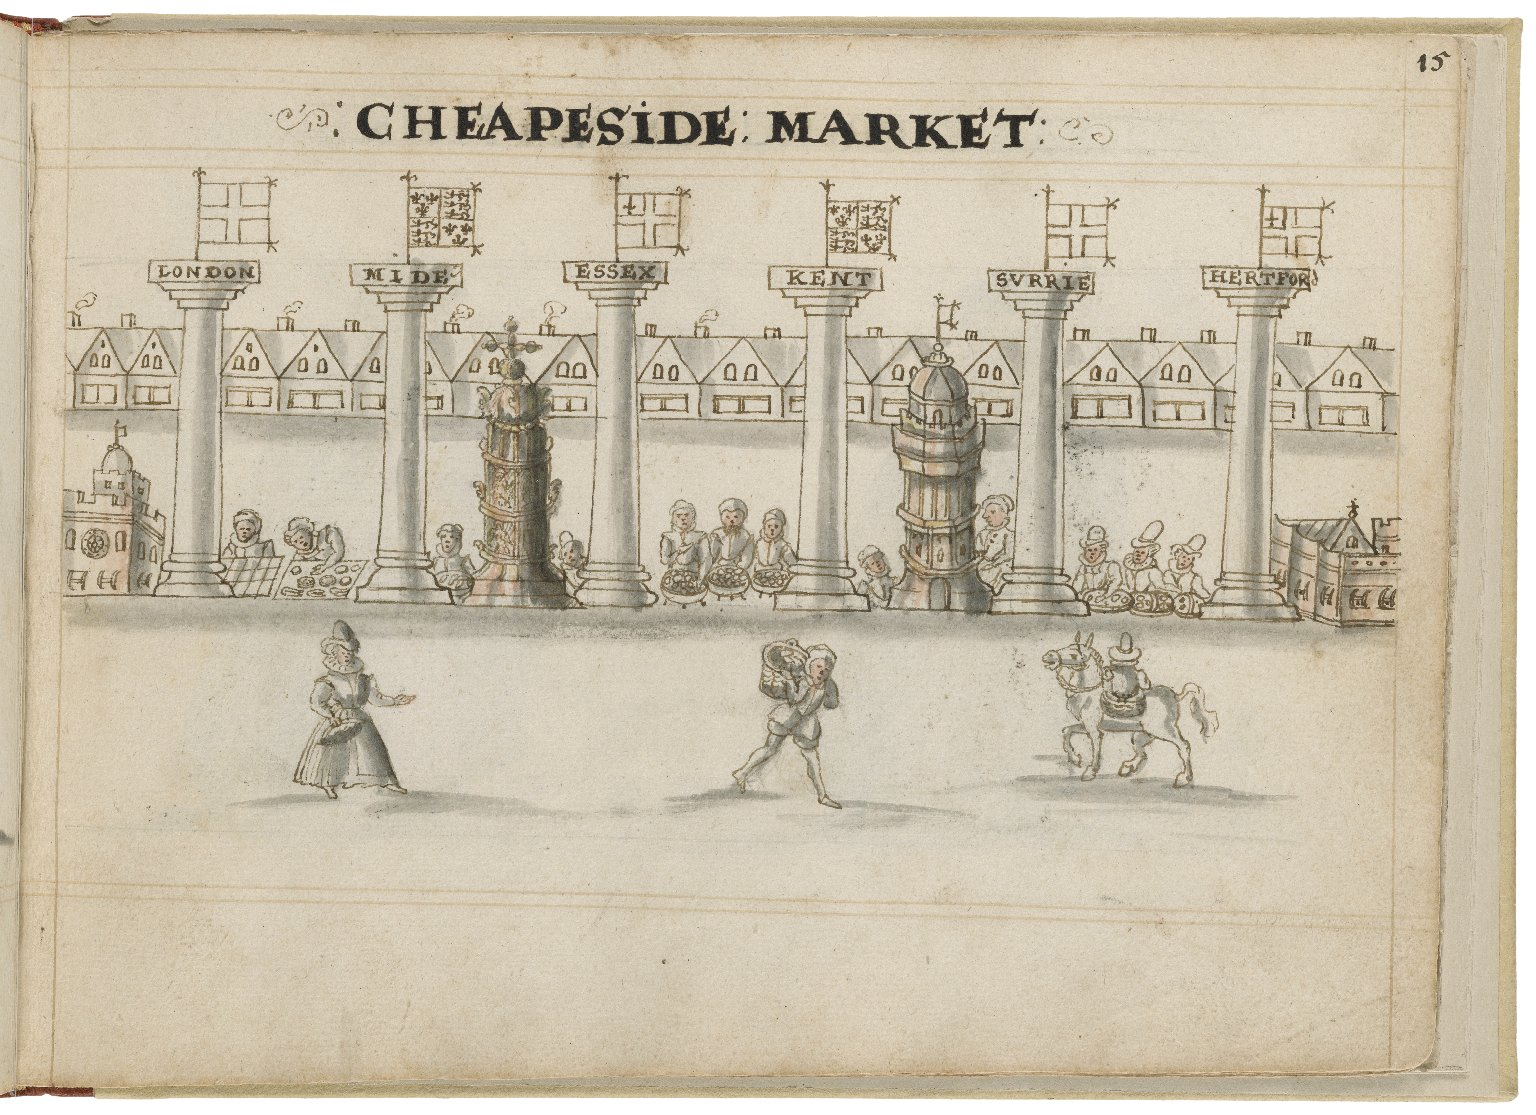 Drawing of Cheapside by Hugh Alley. Image courtesy of the Folger Digital Image Collection.